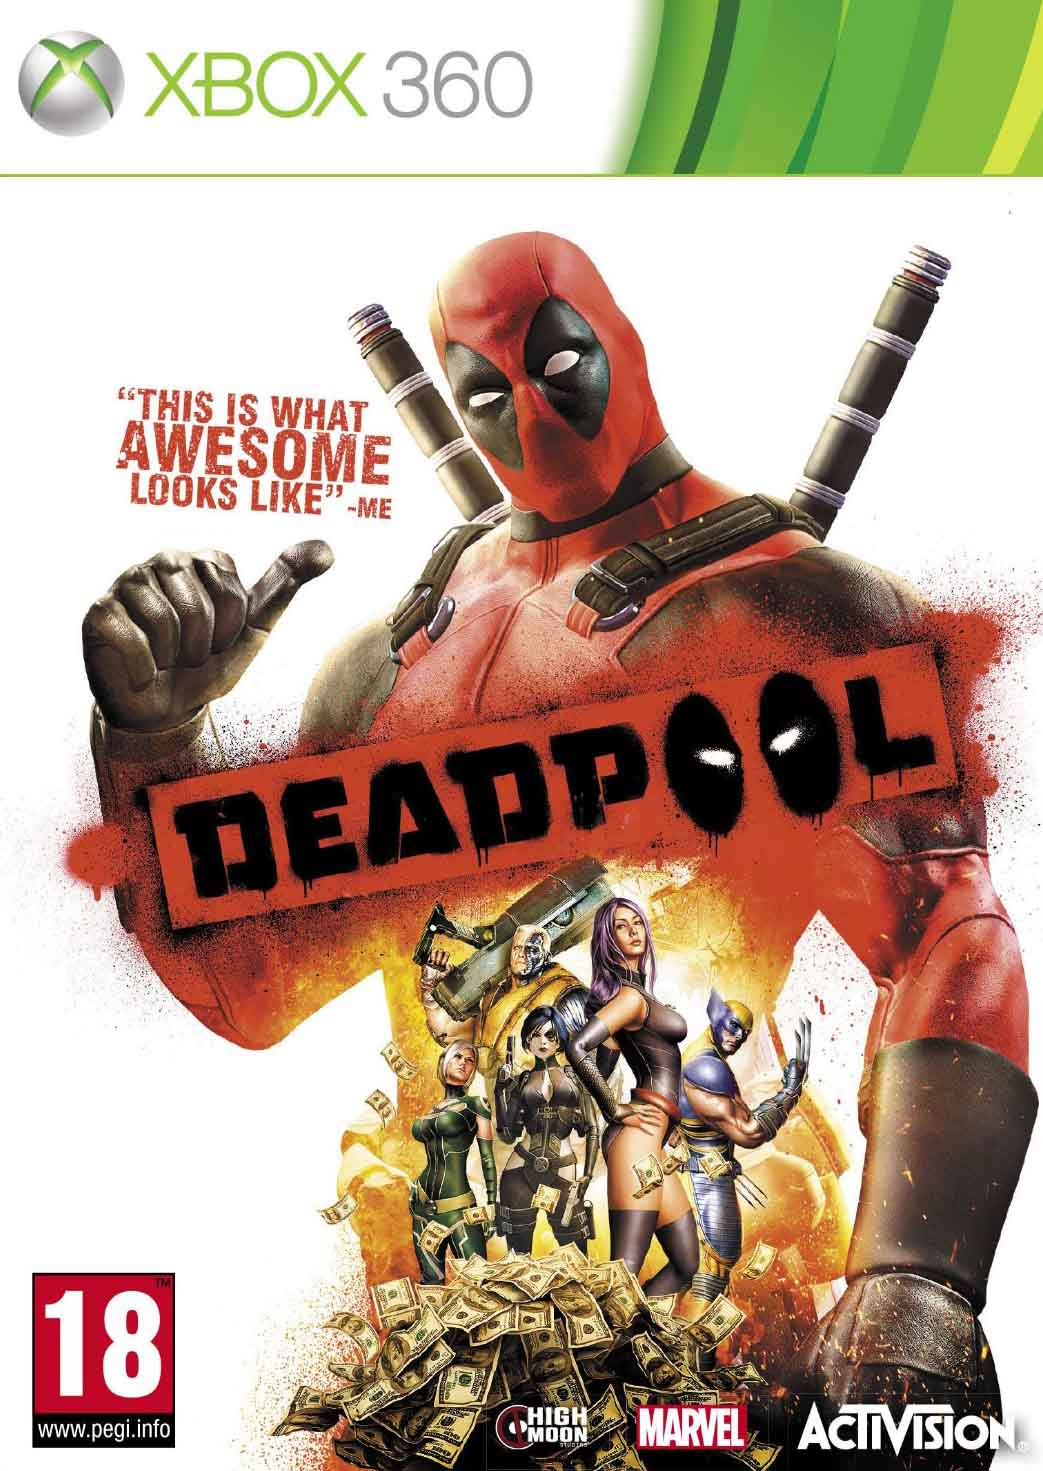 Deadpool: Legendado PT-BR (LT 3.0 RF) Xbox 360 Torrent